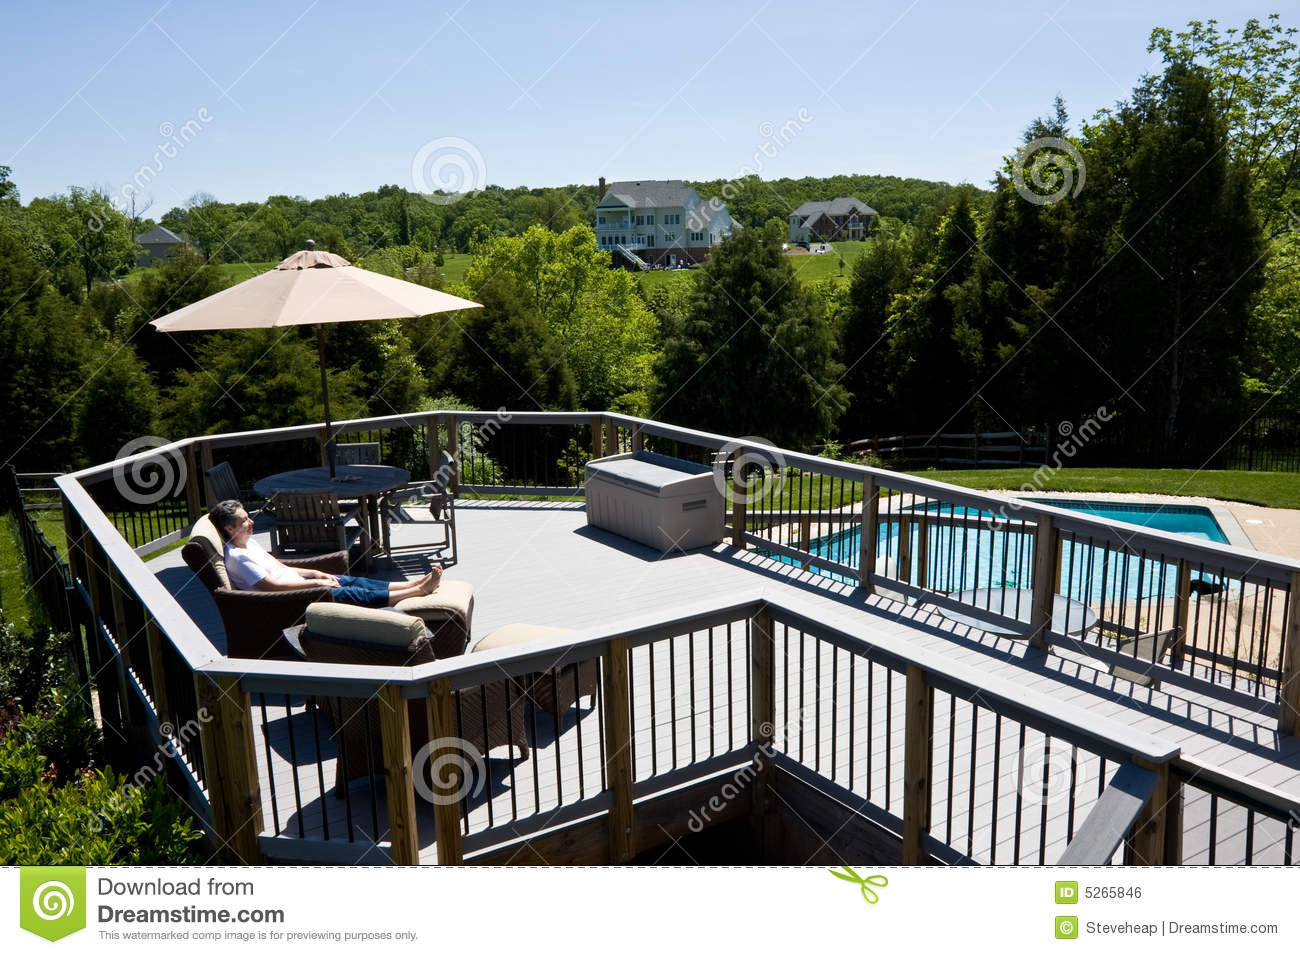 Lady relaxing on a deck